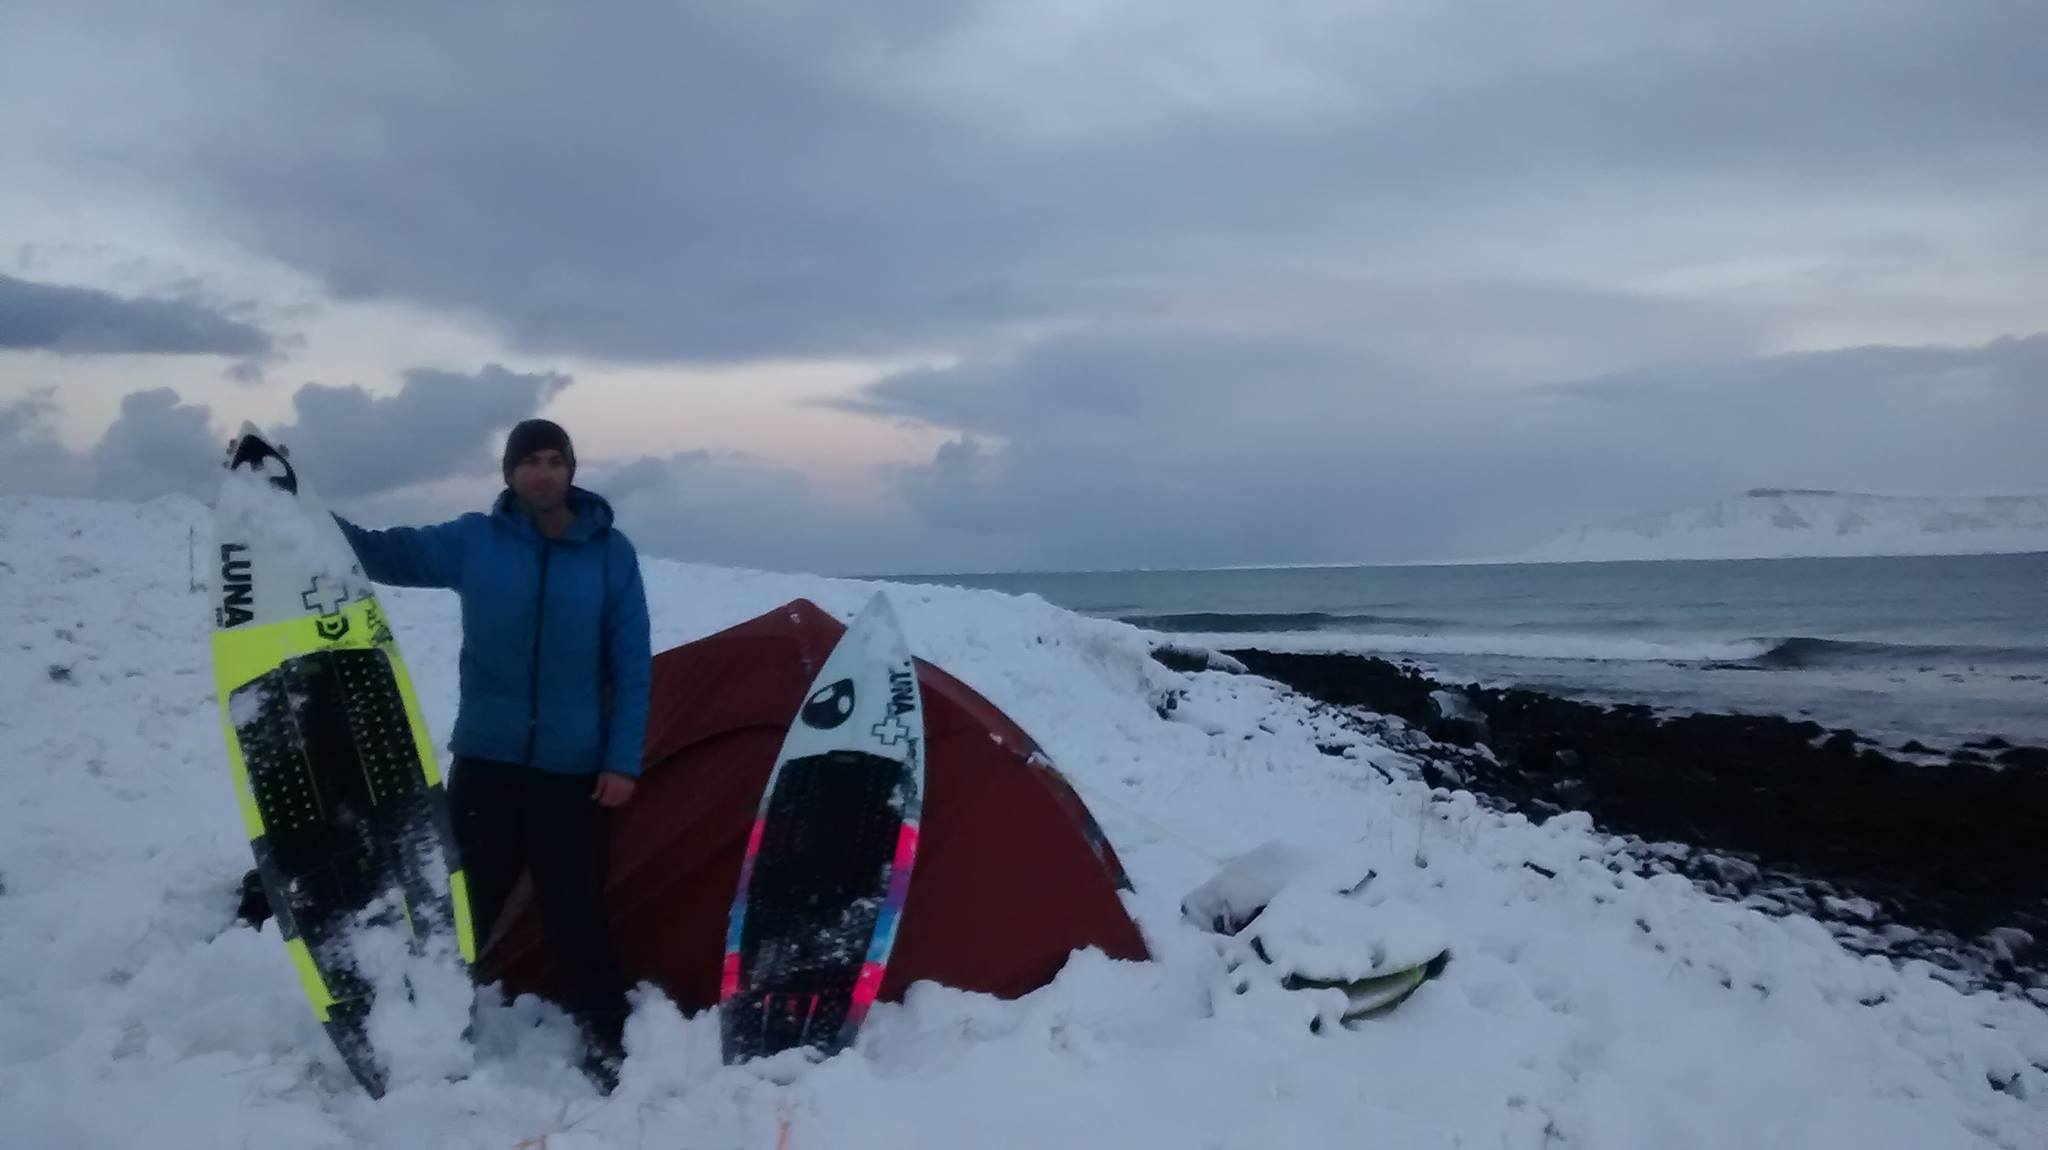 ian-battrick-solo-snow-camping-iceland-cold-water-surf-lunasurf-full-deck-grip-iceland.jpg